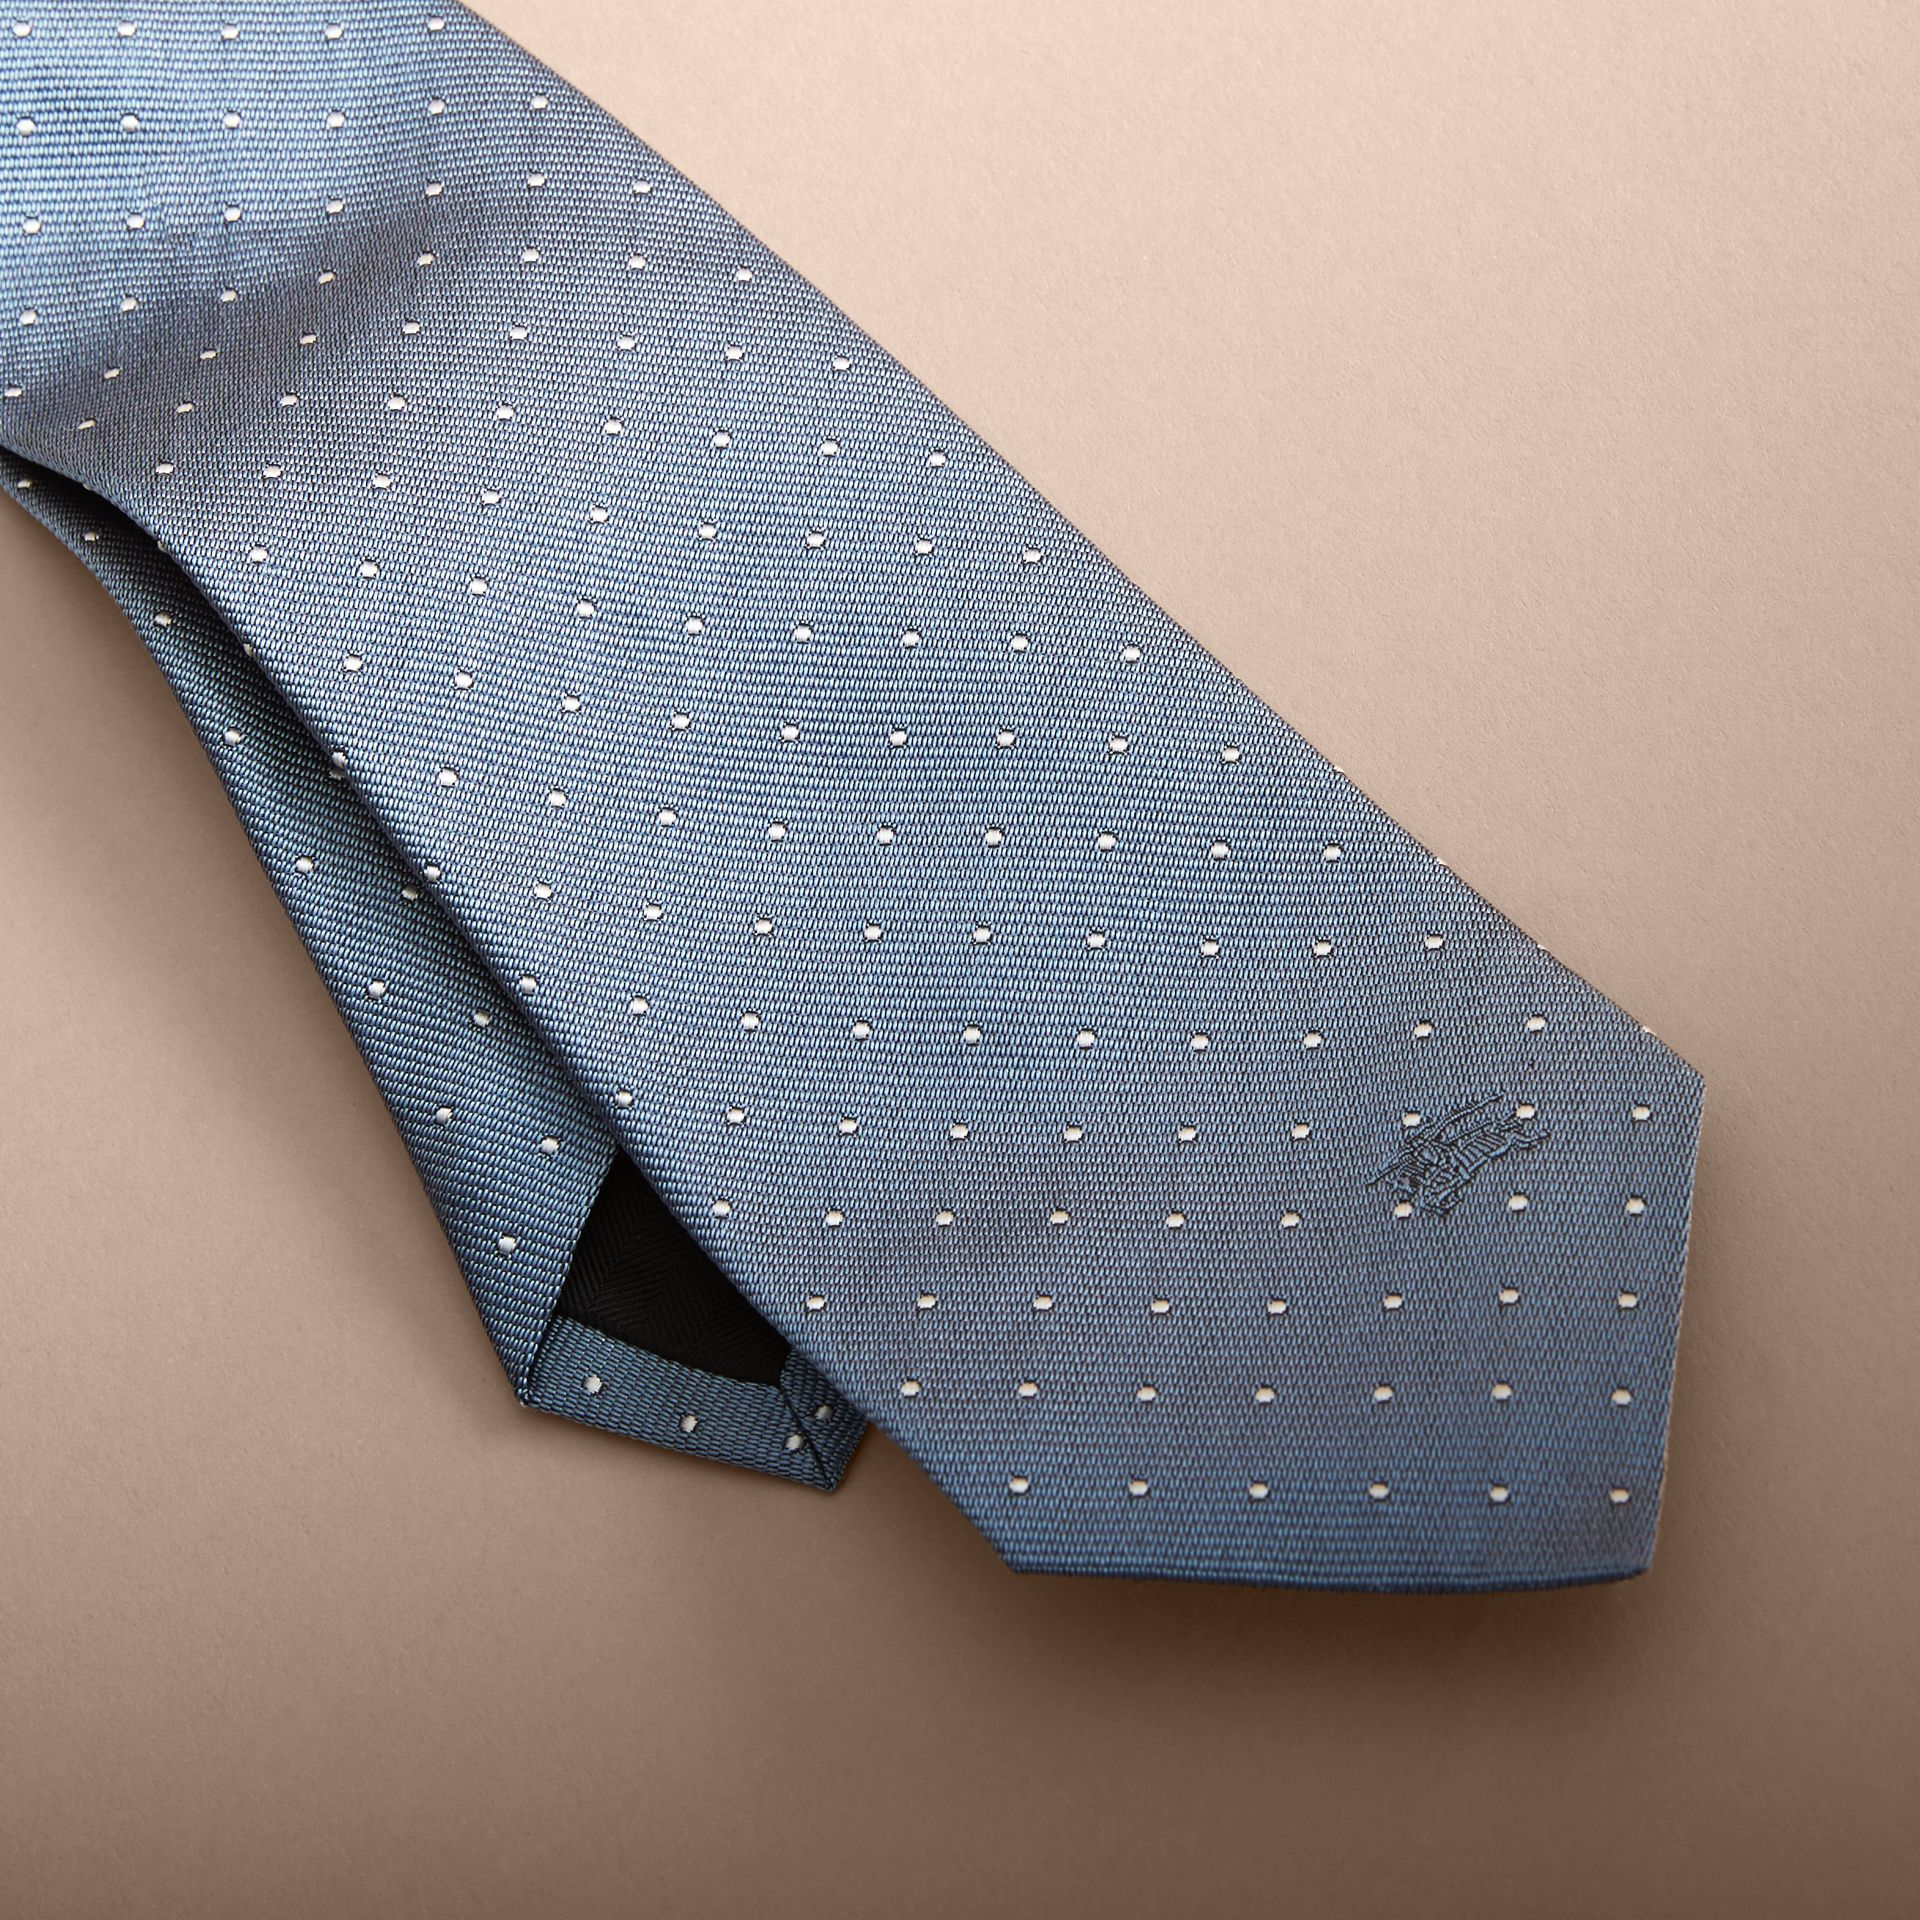 Modern Cut Polka Dot Silk Tie in Light Blue - Men | Burberry - gallery image 2